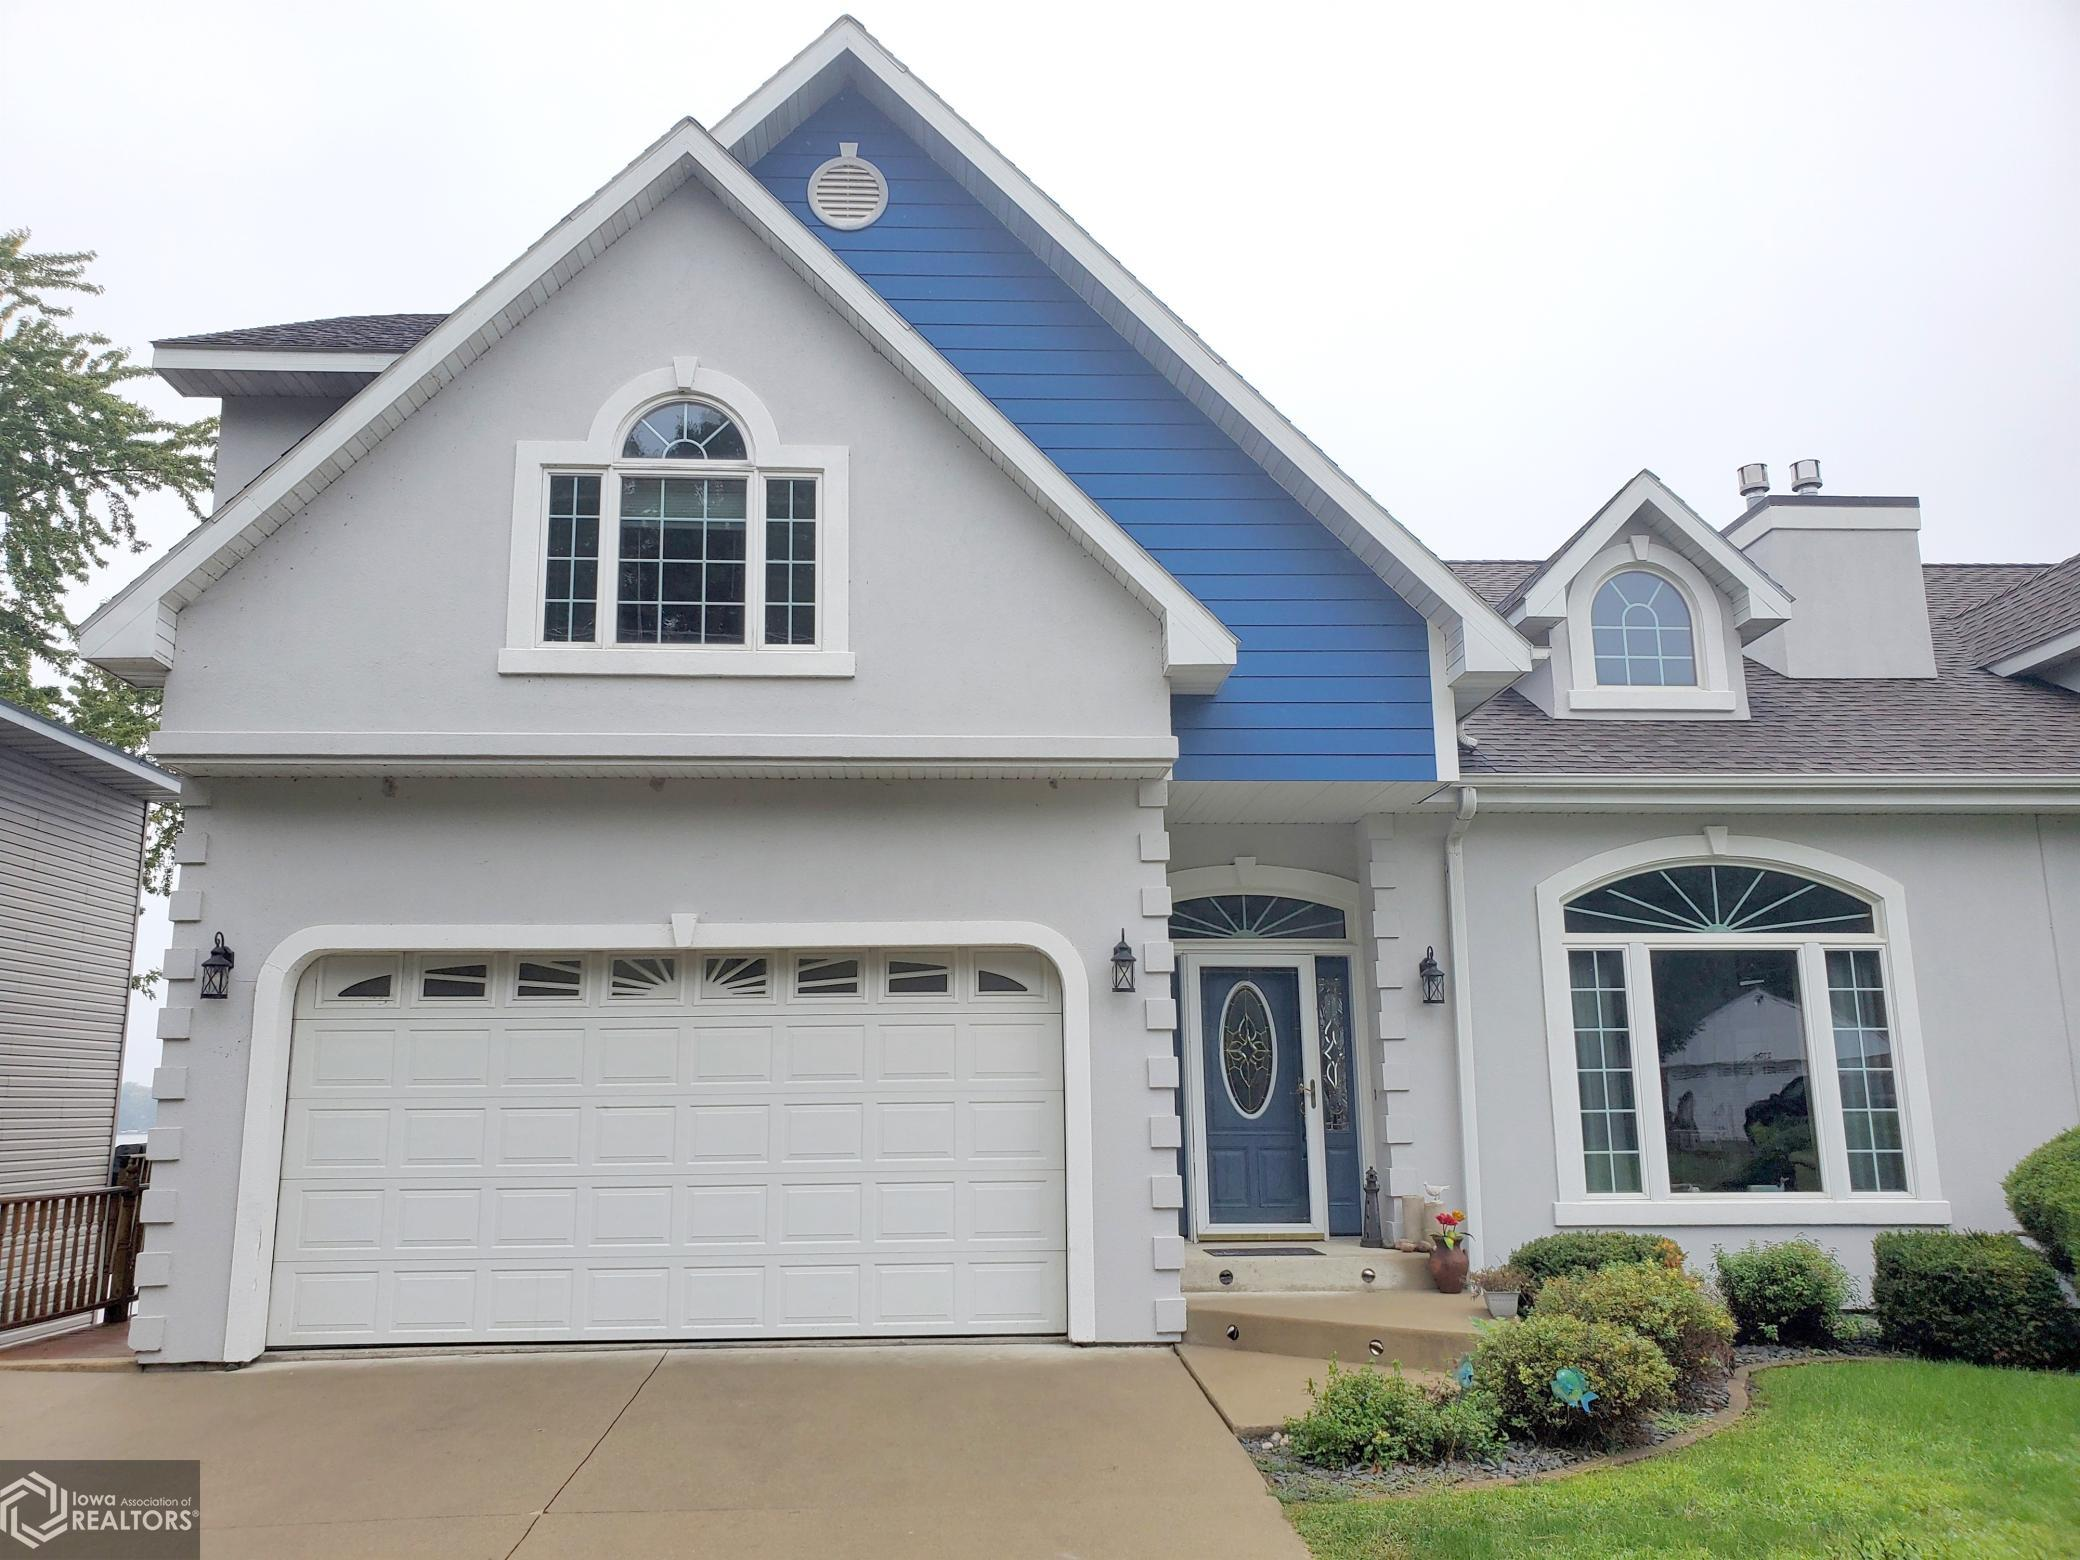 This beautiful lake townhome offers 50 feet of Lake Front, a private dock, and three full levels to accommodate the whole family. 5 bedrm. 3 1/2 baths, fireplace, dock with boat lift. Currently used as a weekly summer AirBnB. Could easily be expanded to accommodate off-season rentals as well. Just one block north of state park beach.